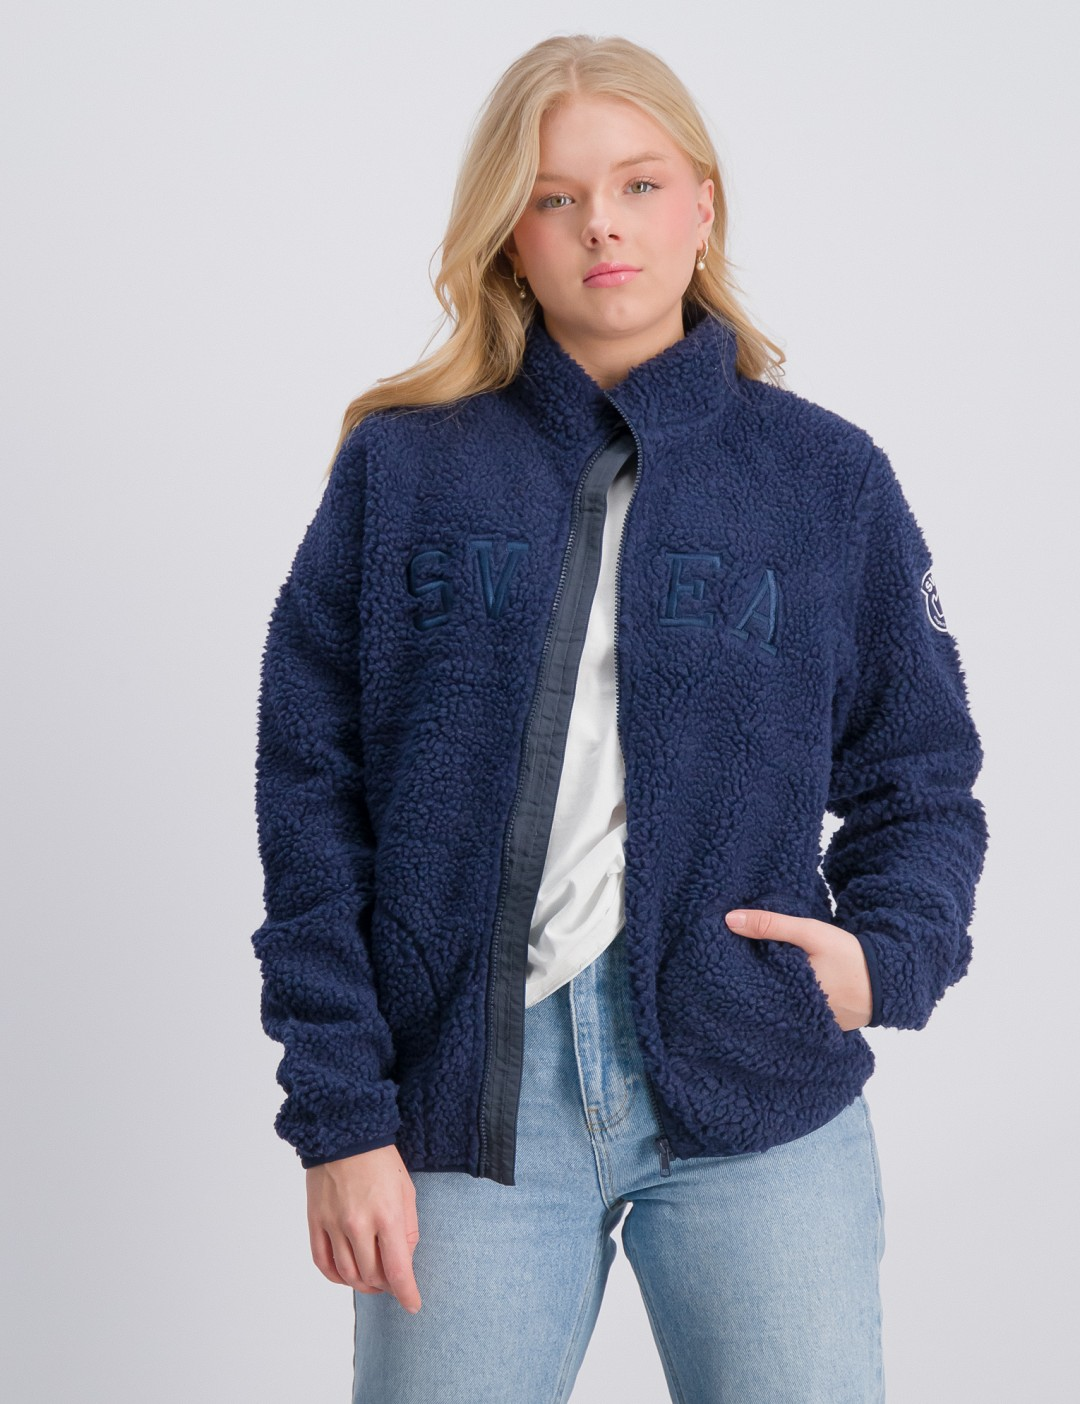 Svea Pile Jacket (Jr)